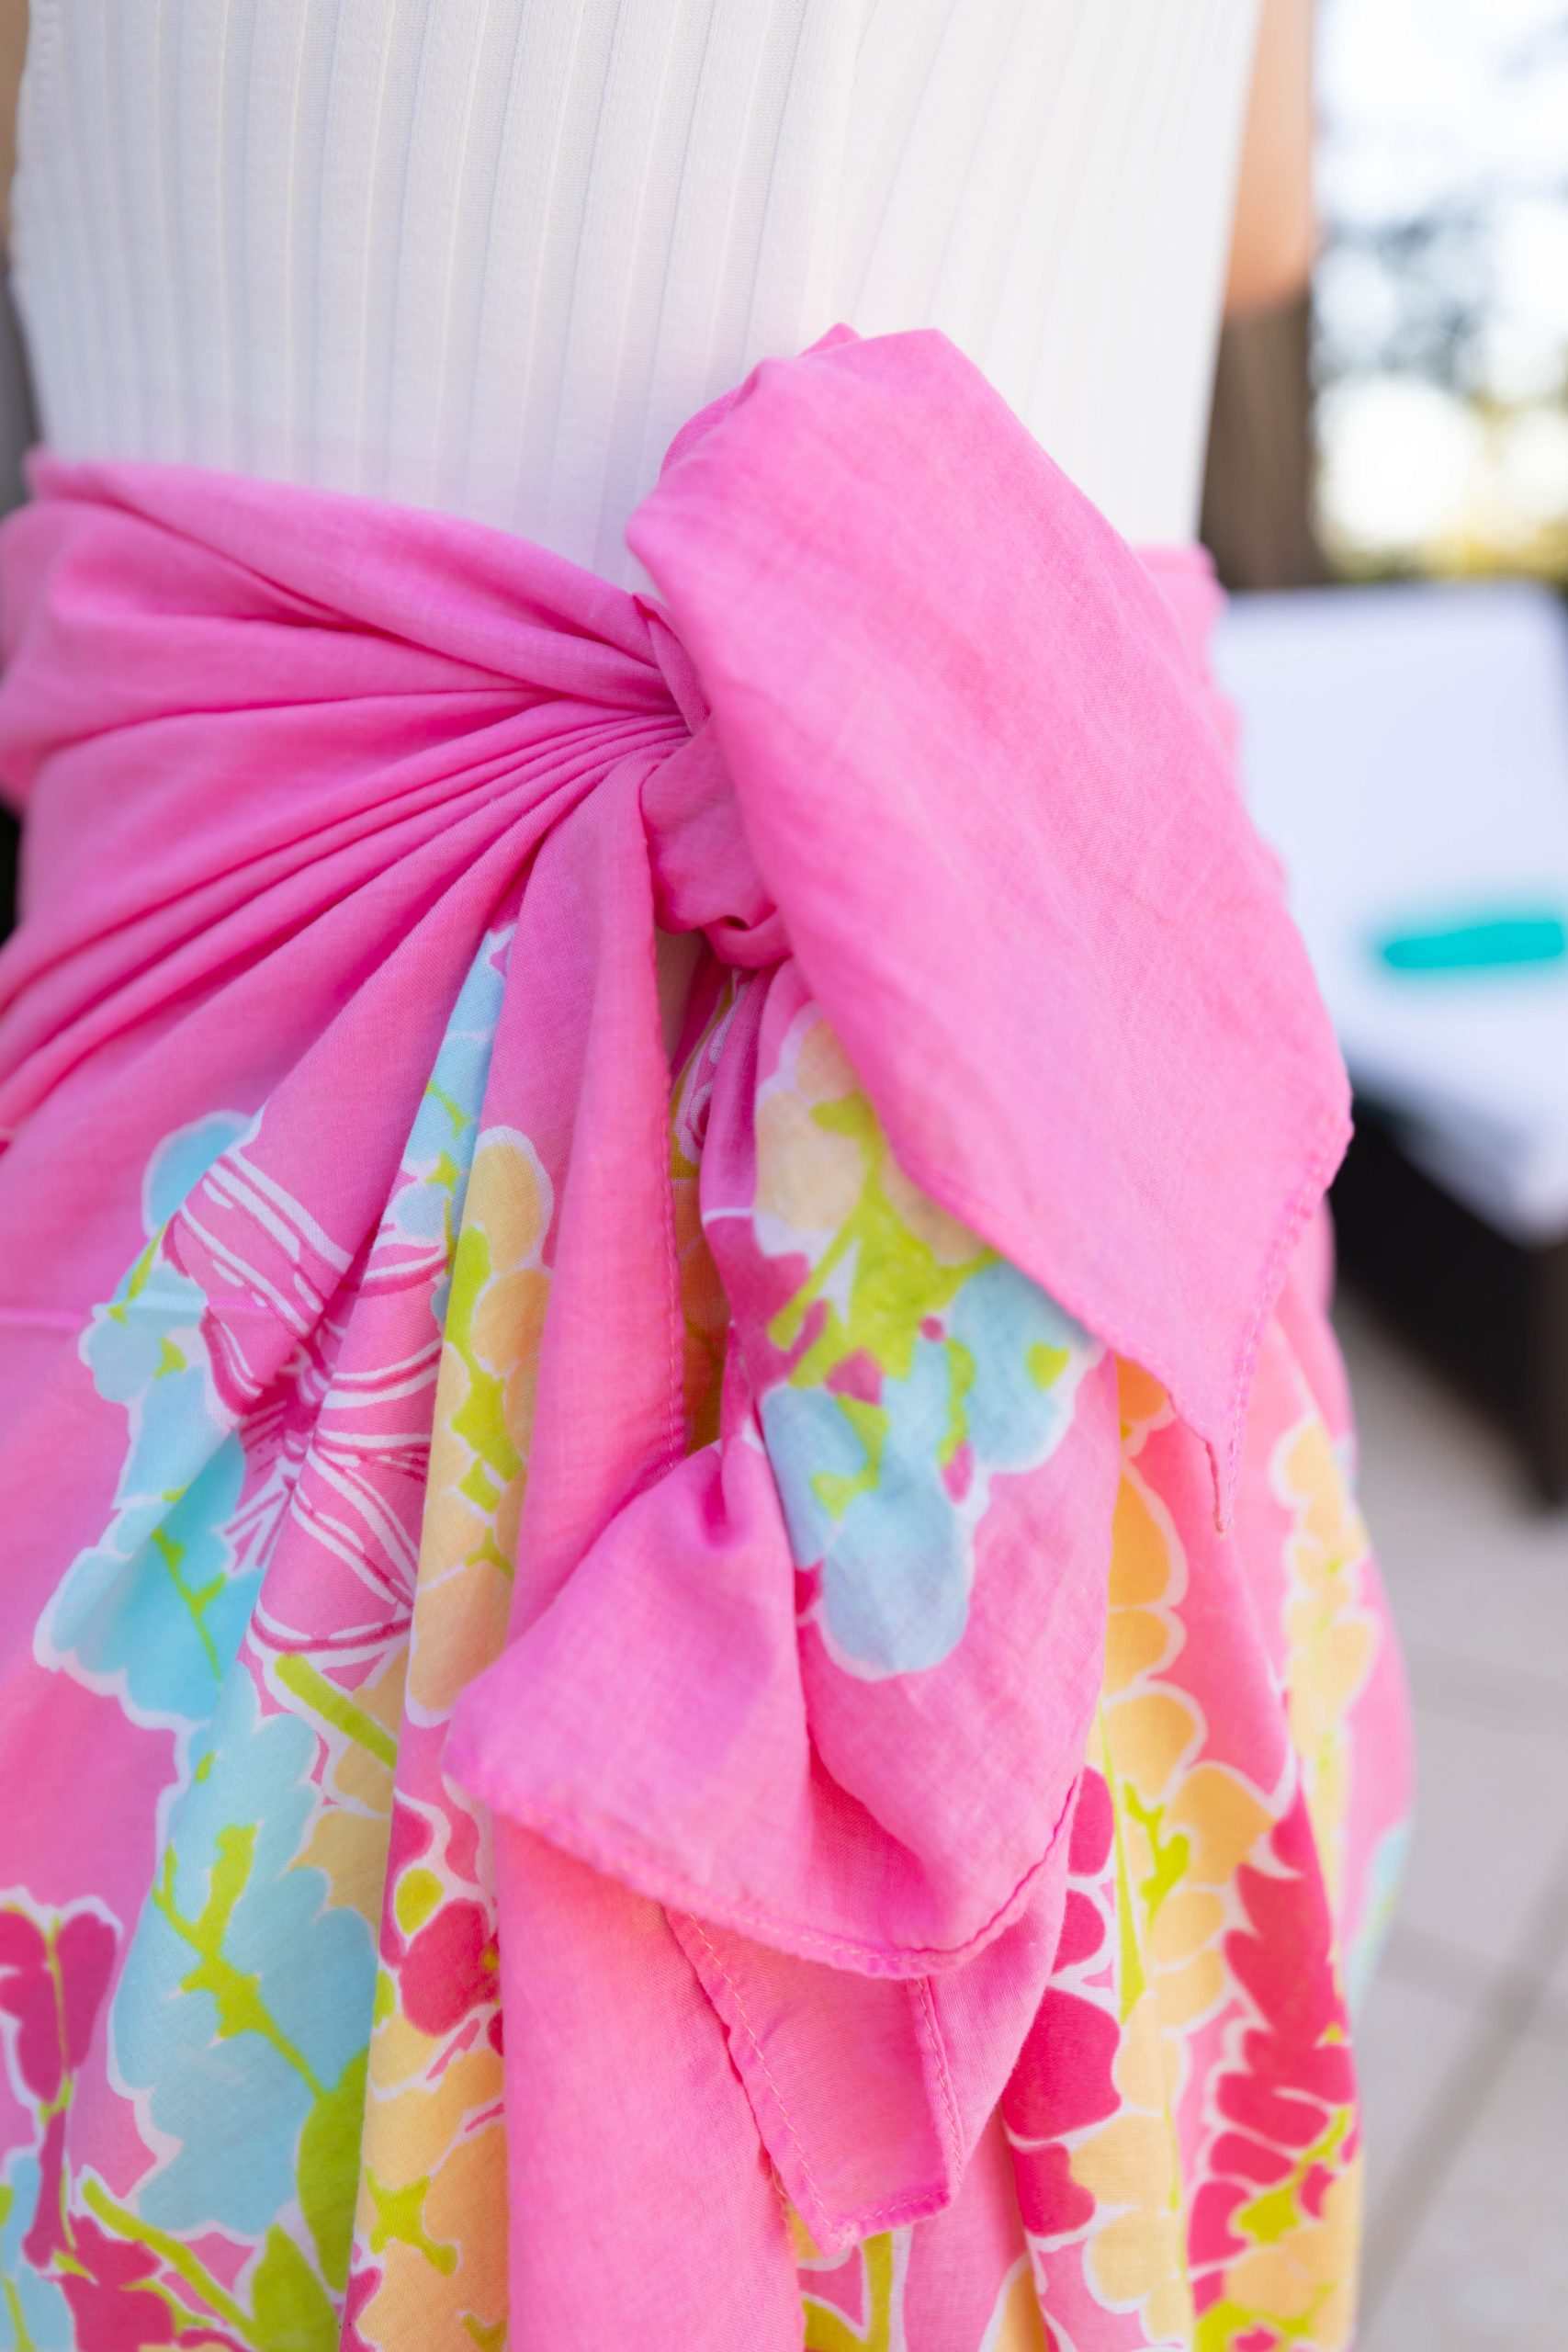 ThredUp Lilly Pulitzer Pink Dragonfly Pareo Sarong Solid & Striped Swimsuit Worn by Annie Fairfax Spring and Summer Style Inspiration